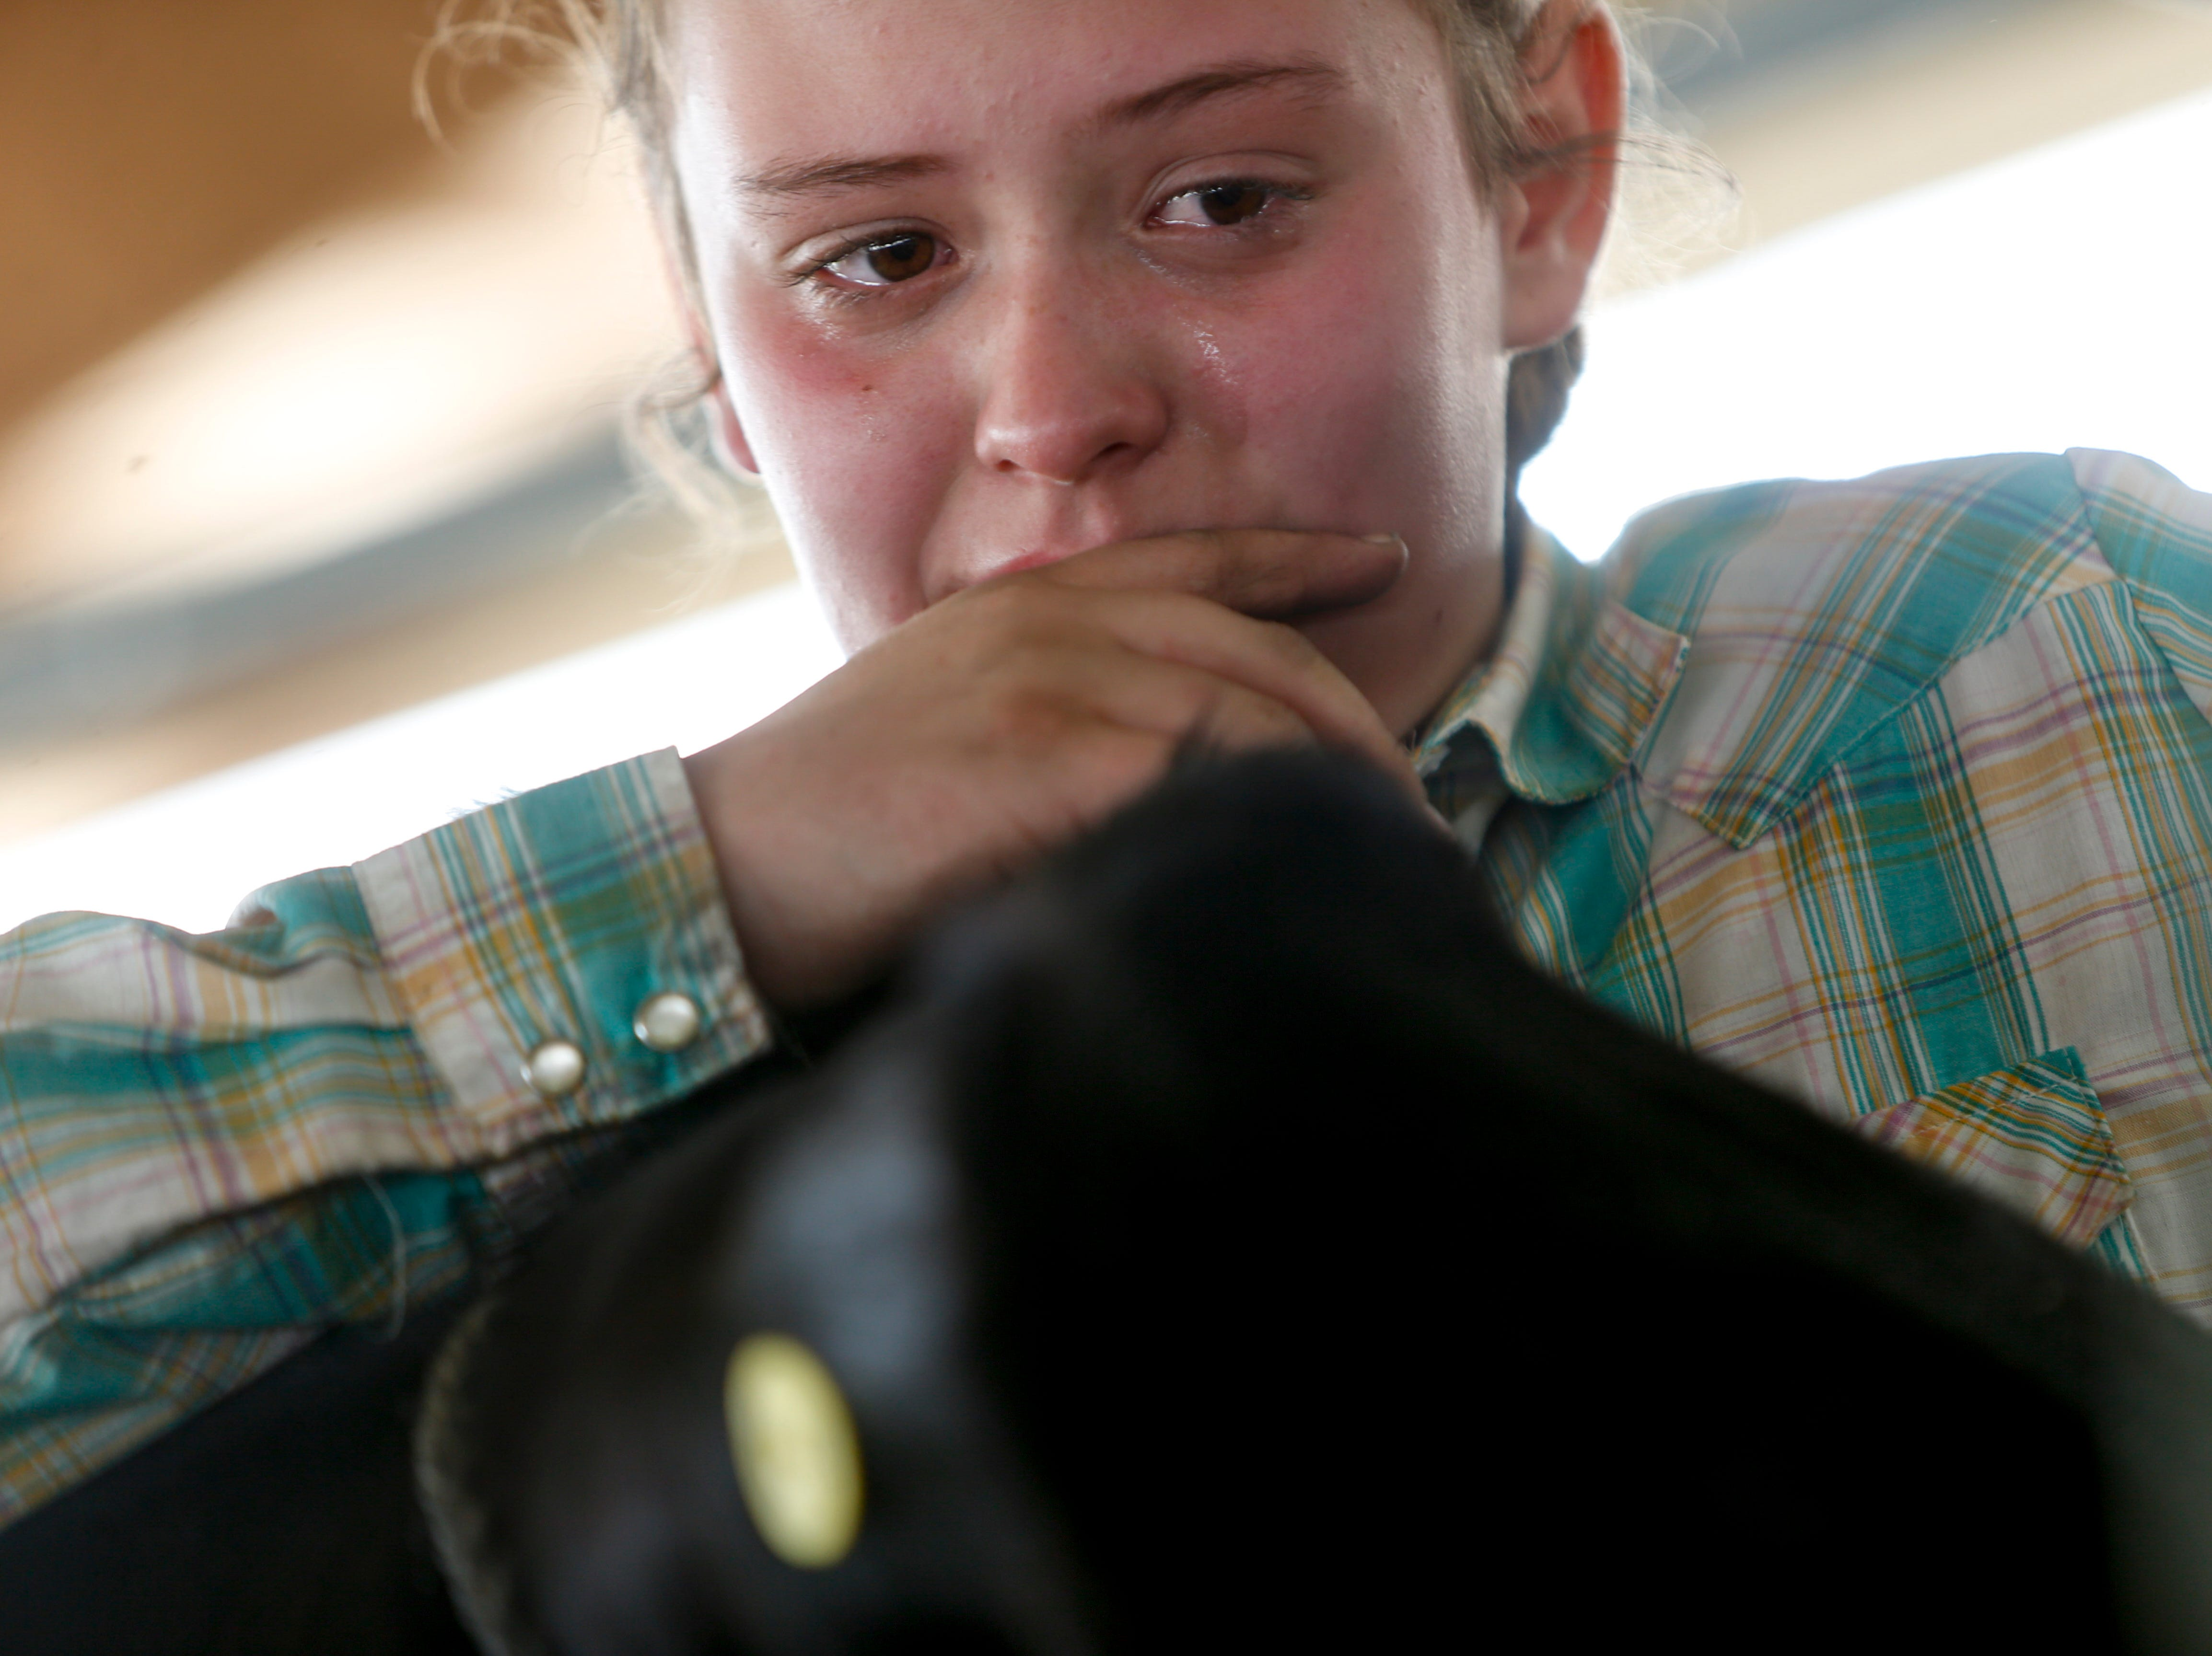 Abby Newberry, 11, cries while leaning over her steer SpongeBob, whom she raised over a year before the Better Beef Show at the John Bartee Agricultural Center in Clarksville, Tenn., on Tuesday, May 14, 2019.